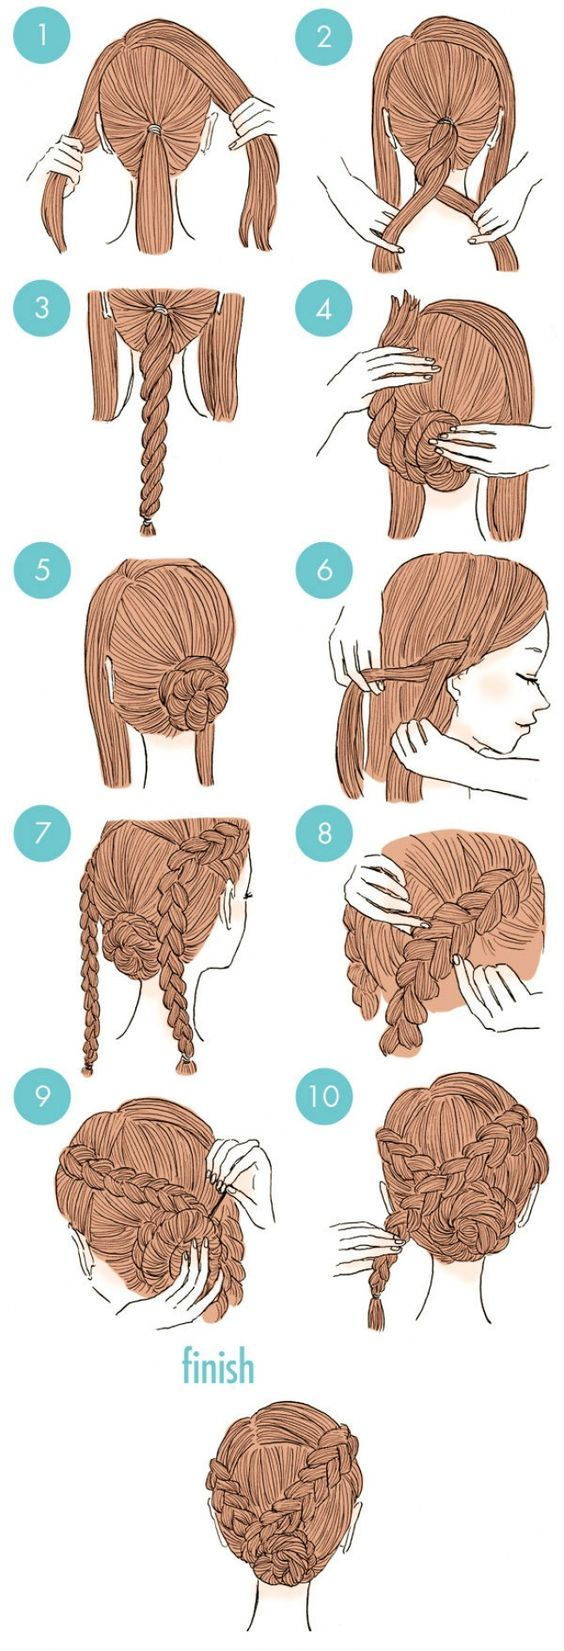 If you're feeling bored with your usual hairstyle but just don't want to...